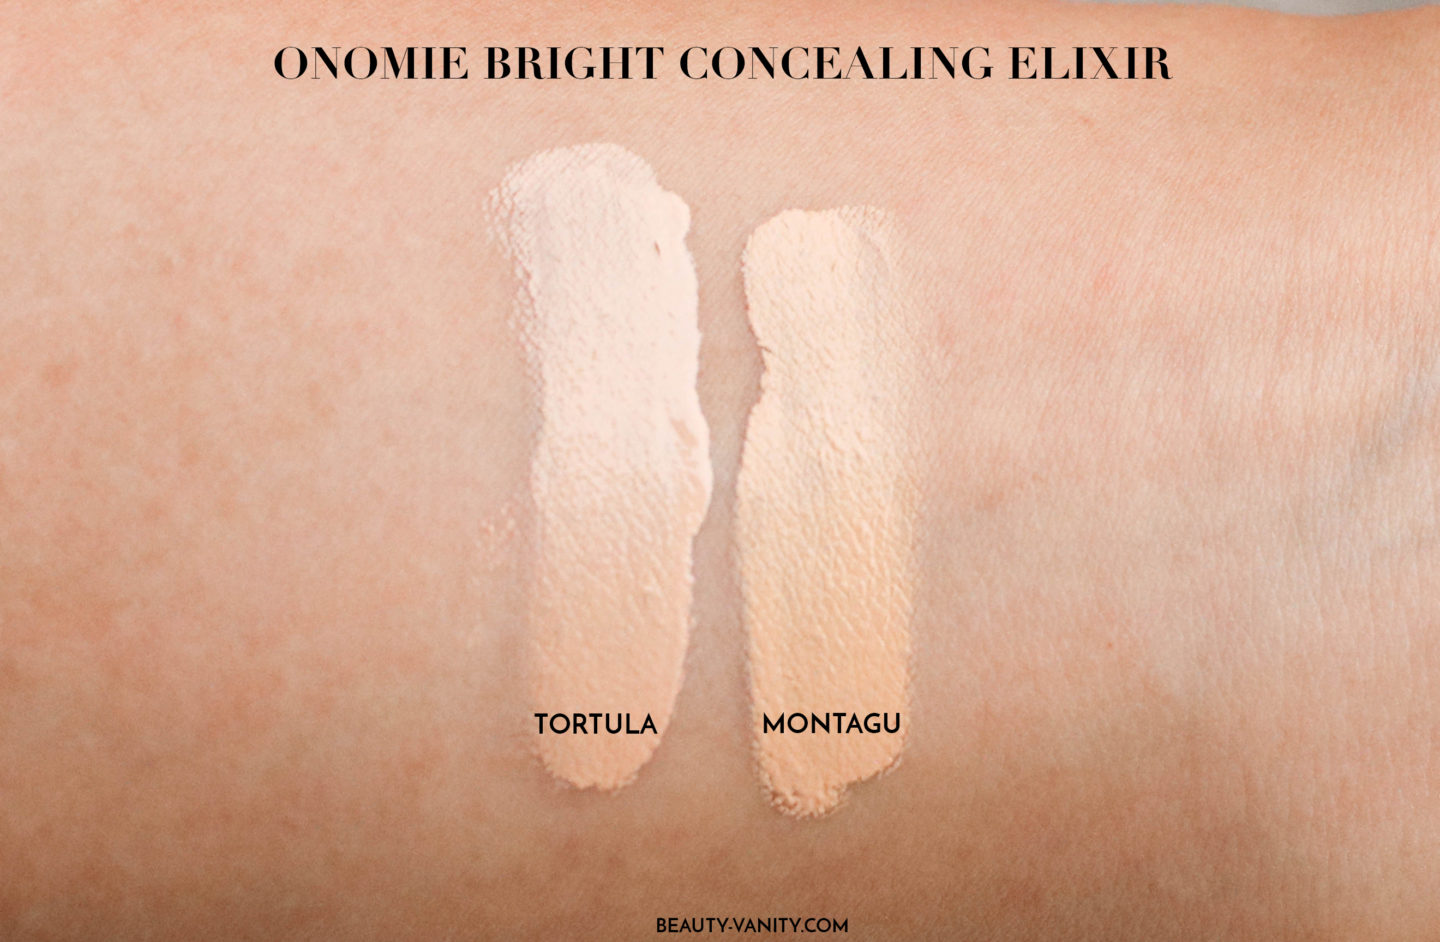 Onomie Bright Concealing Elixir Review | The Beauty Review | The Beauty Vanity